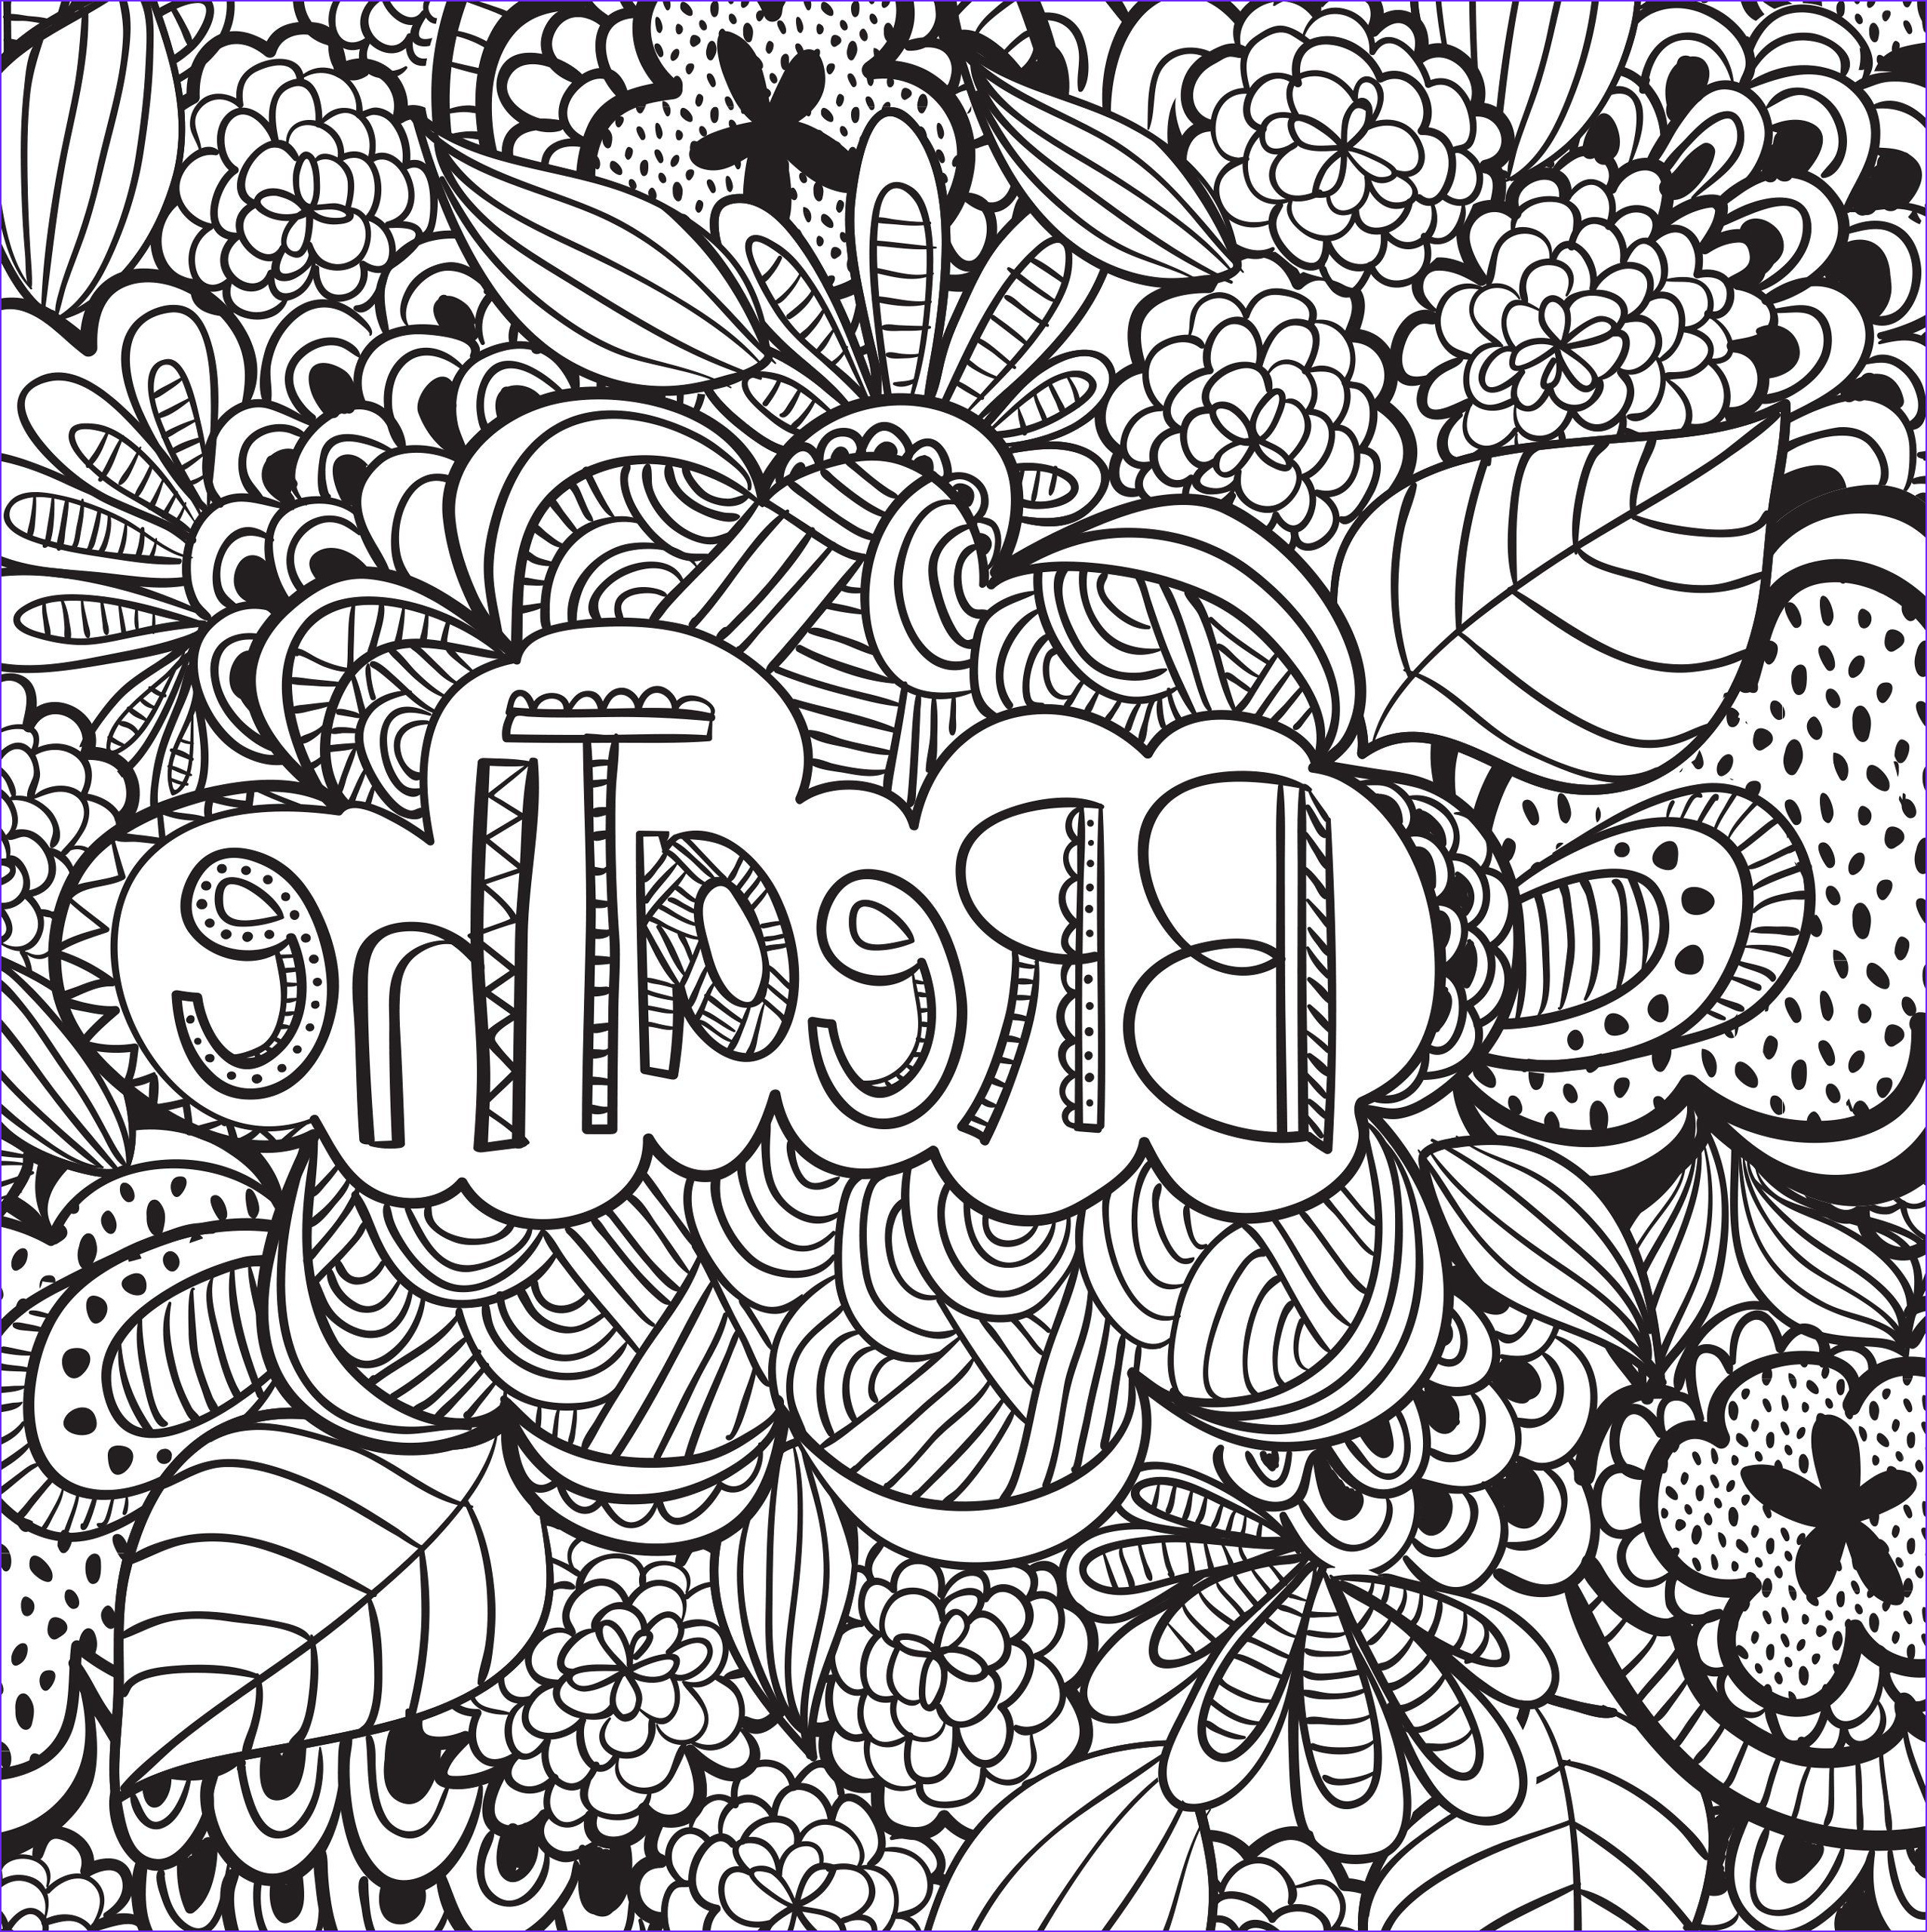 Stress Relieving Coloring Pages Inspirational Photos Joyful Inspiration Adult Coloring Book 31 Stress